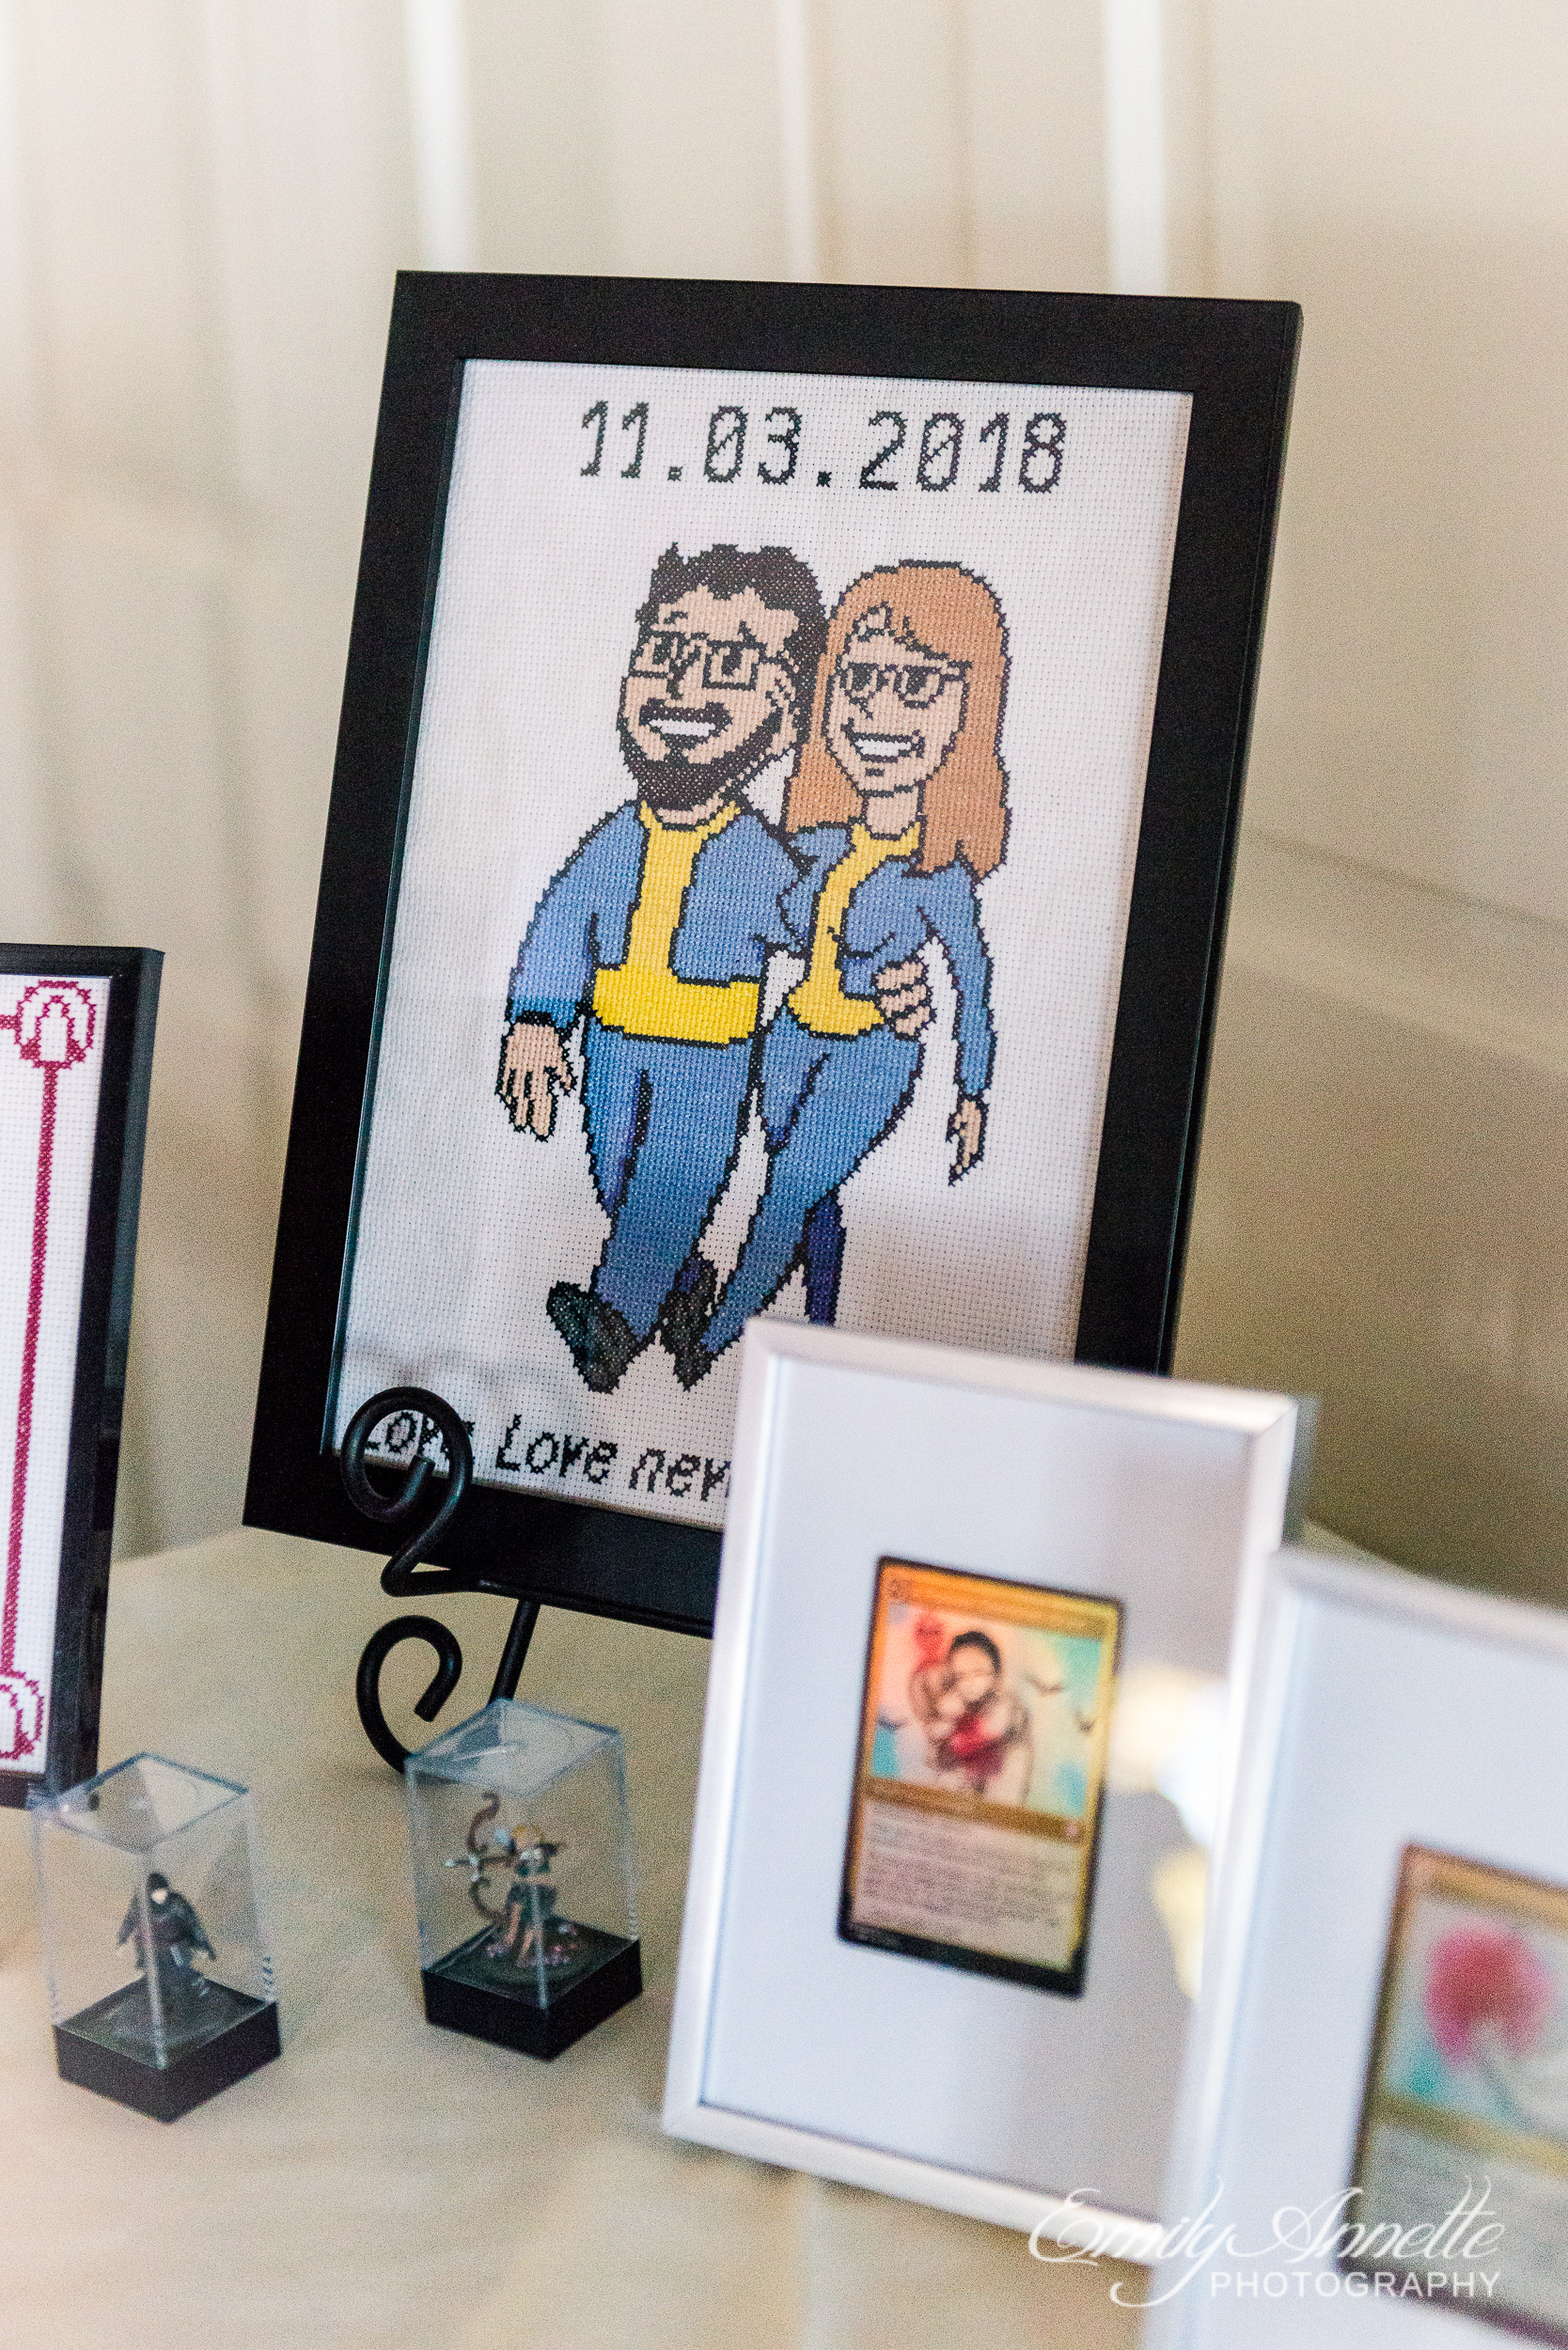 A cross stitch portrait of the bride and groom as characters from Fallout at a wedding reception at Willow Oaks Country Club in Richmond, Virginia